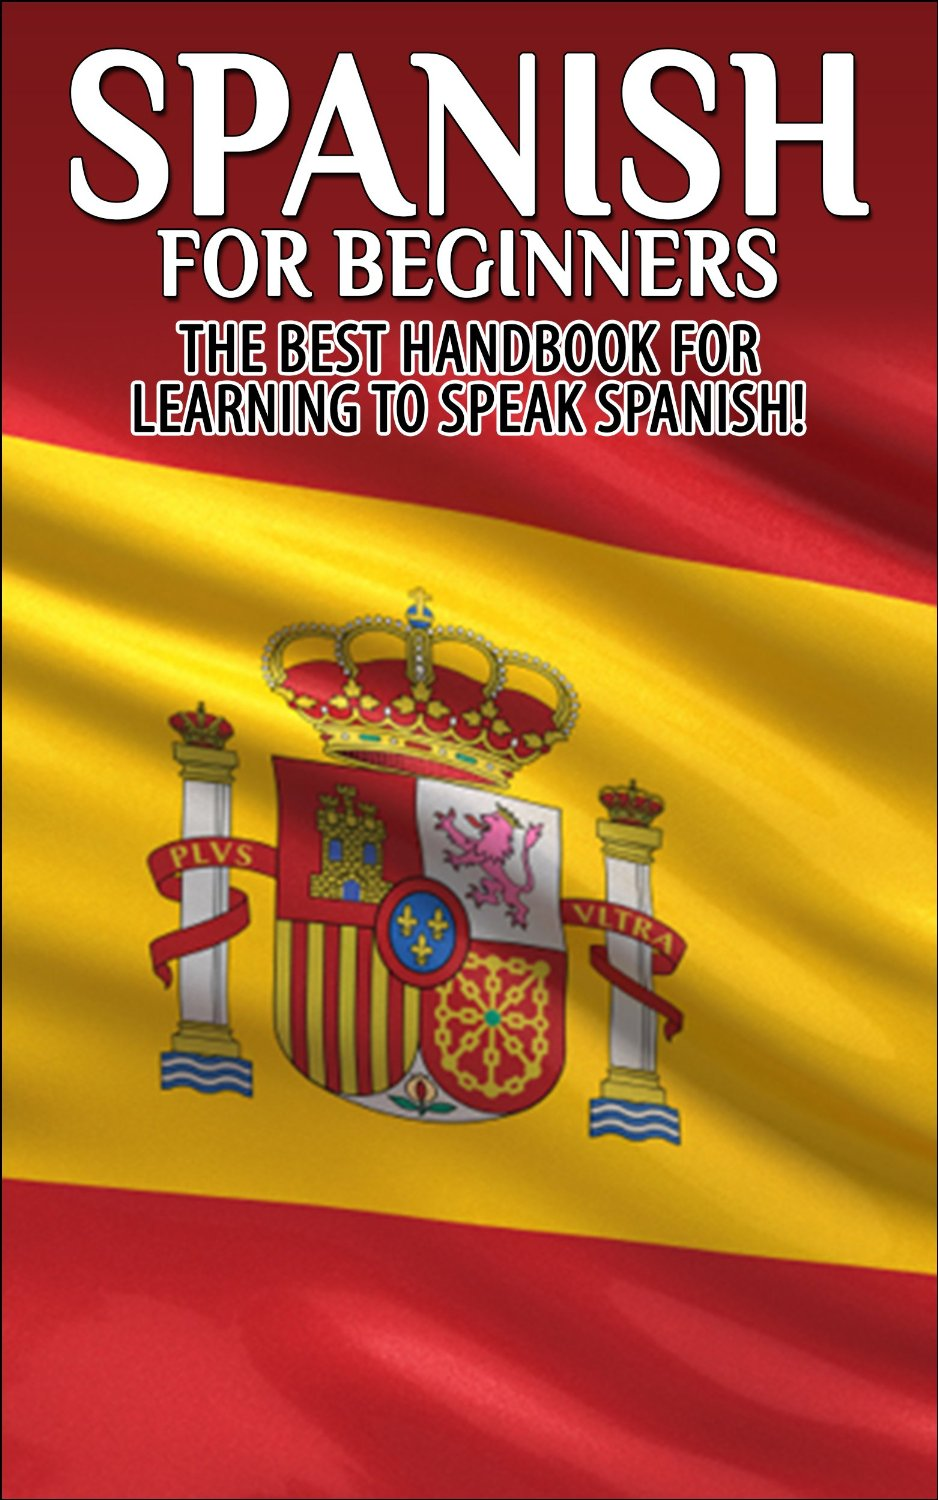 Amazon.com: Spanish Grammar for Independent Learners ...